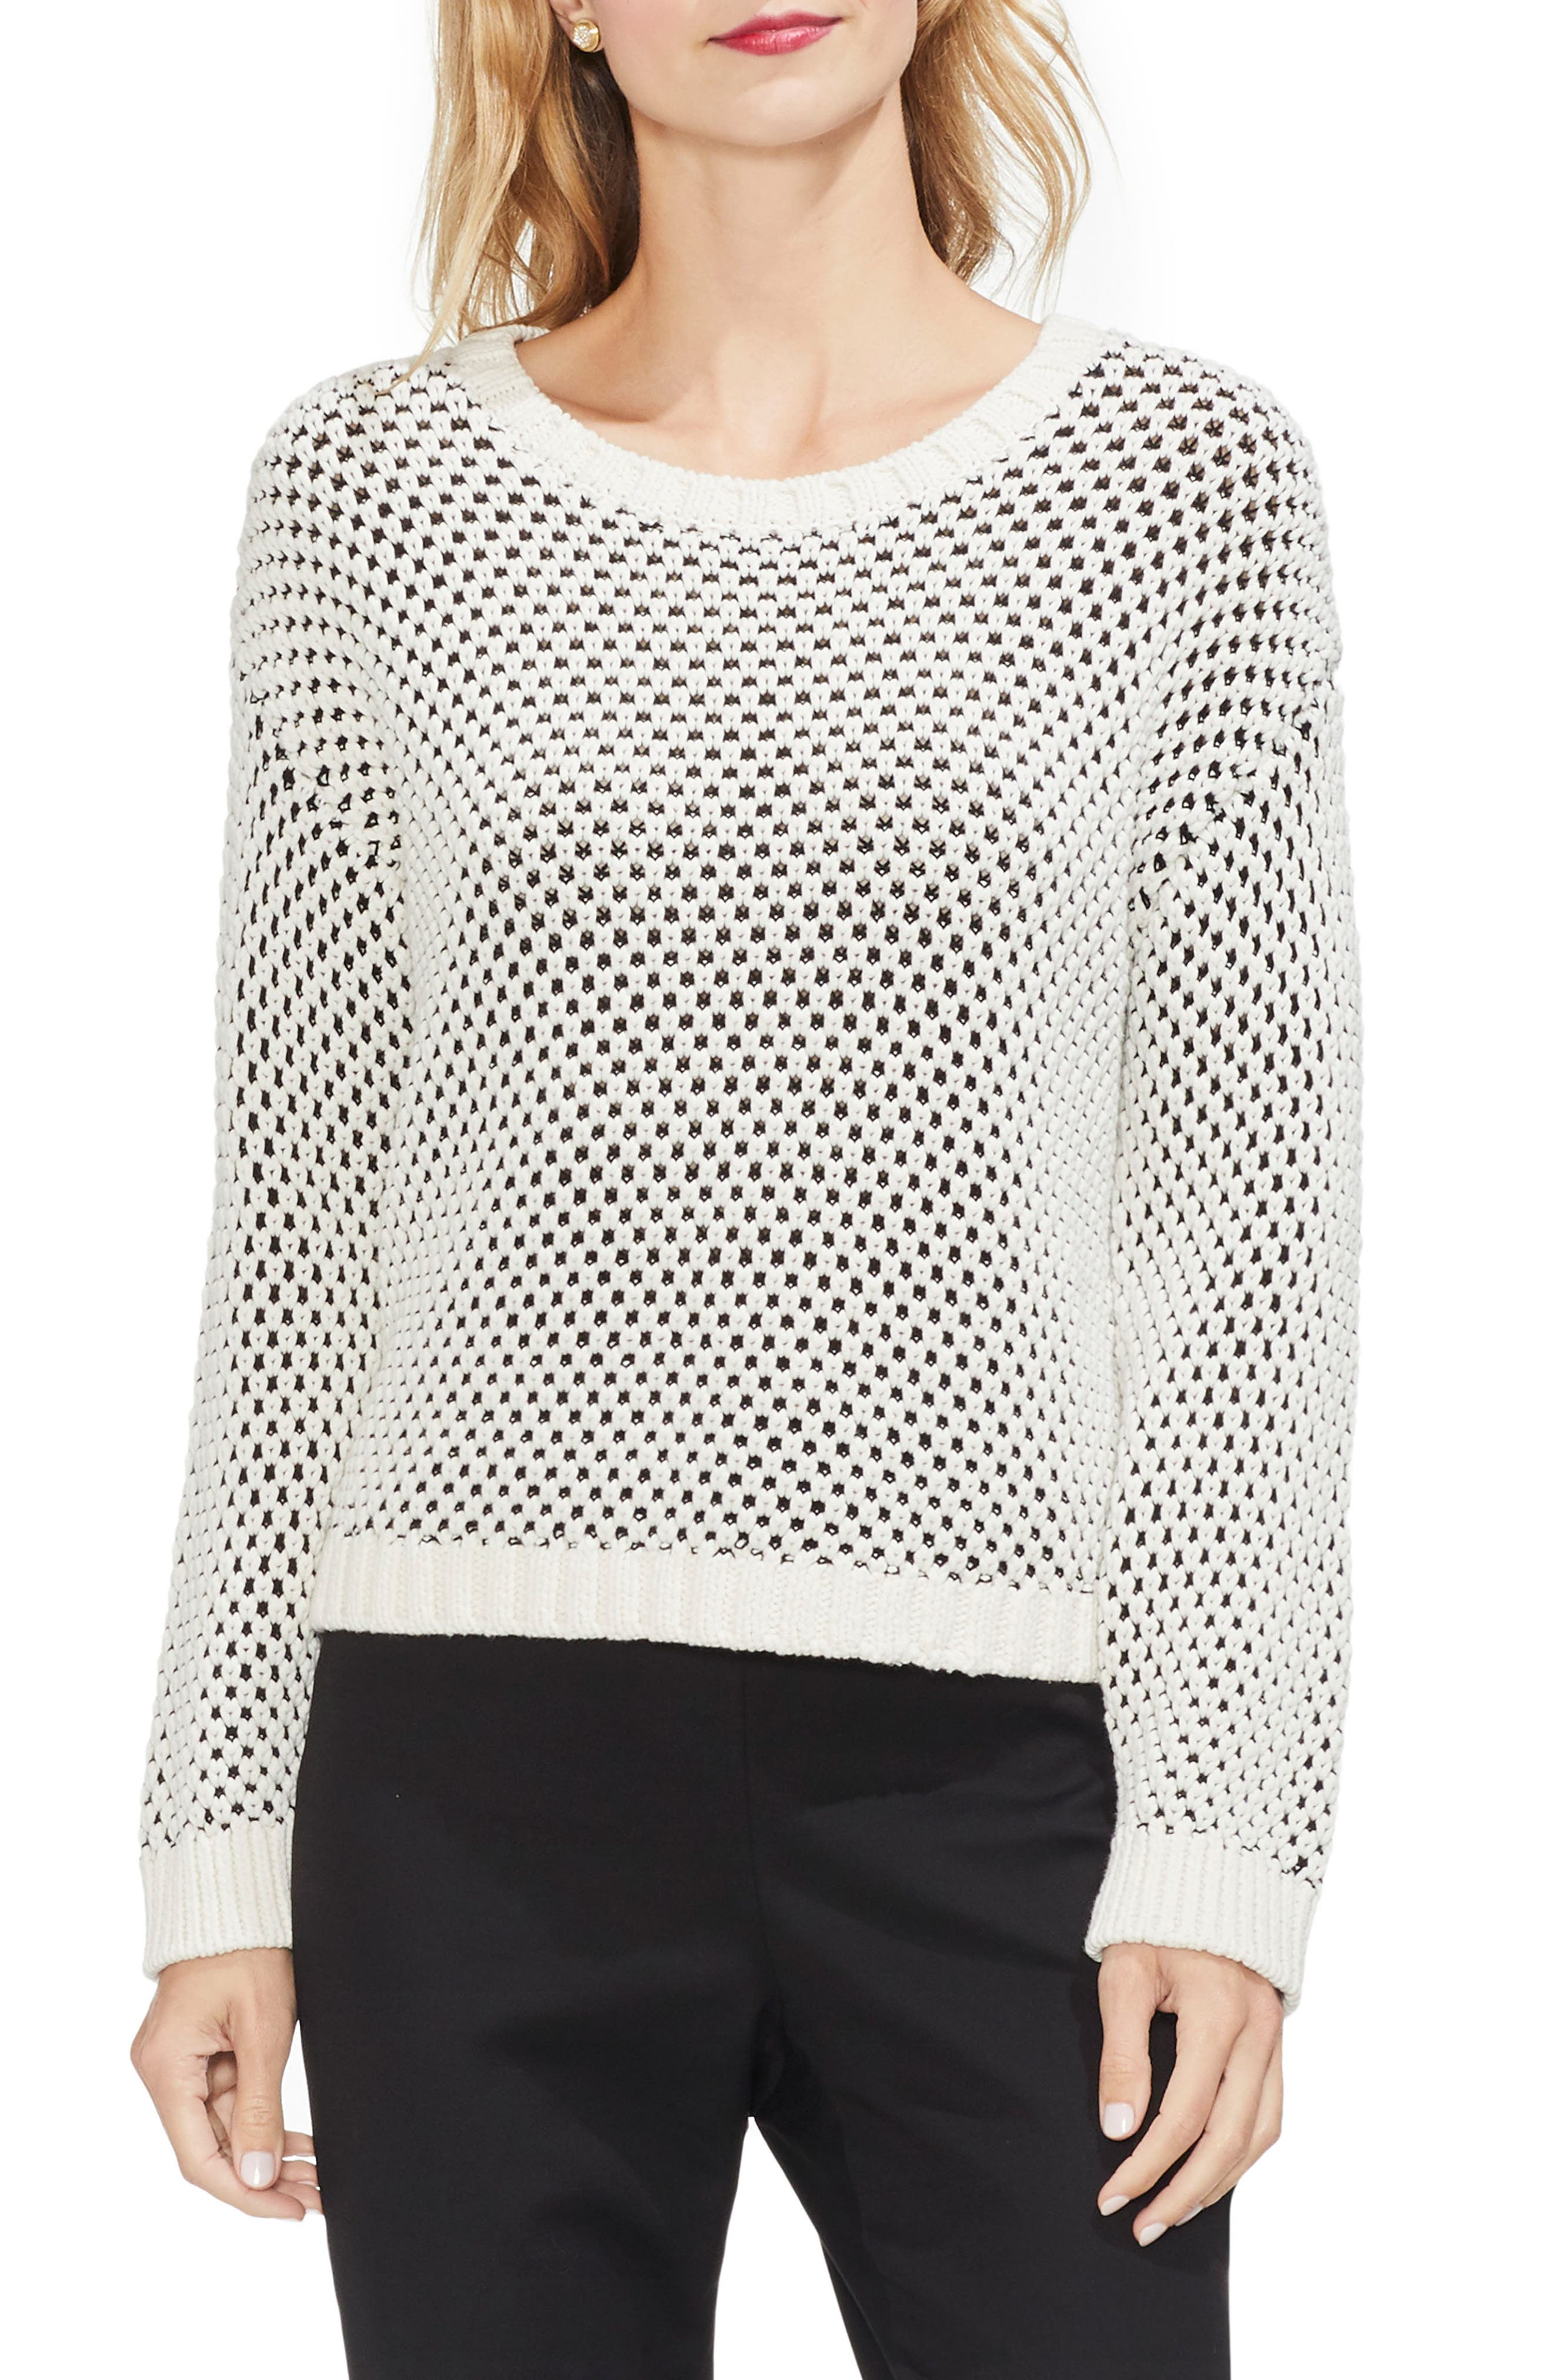 VINCE CAMUTO Textured Stitch Sweater, Main, color, ANTIQUE WHITE